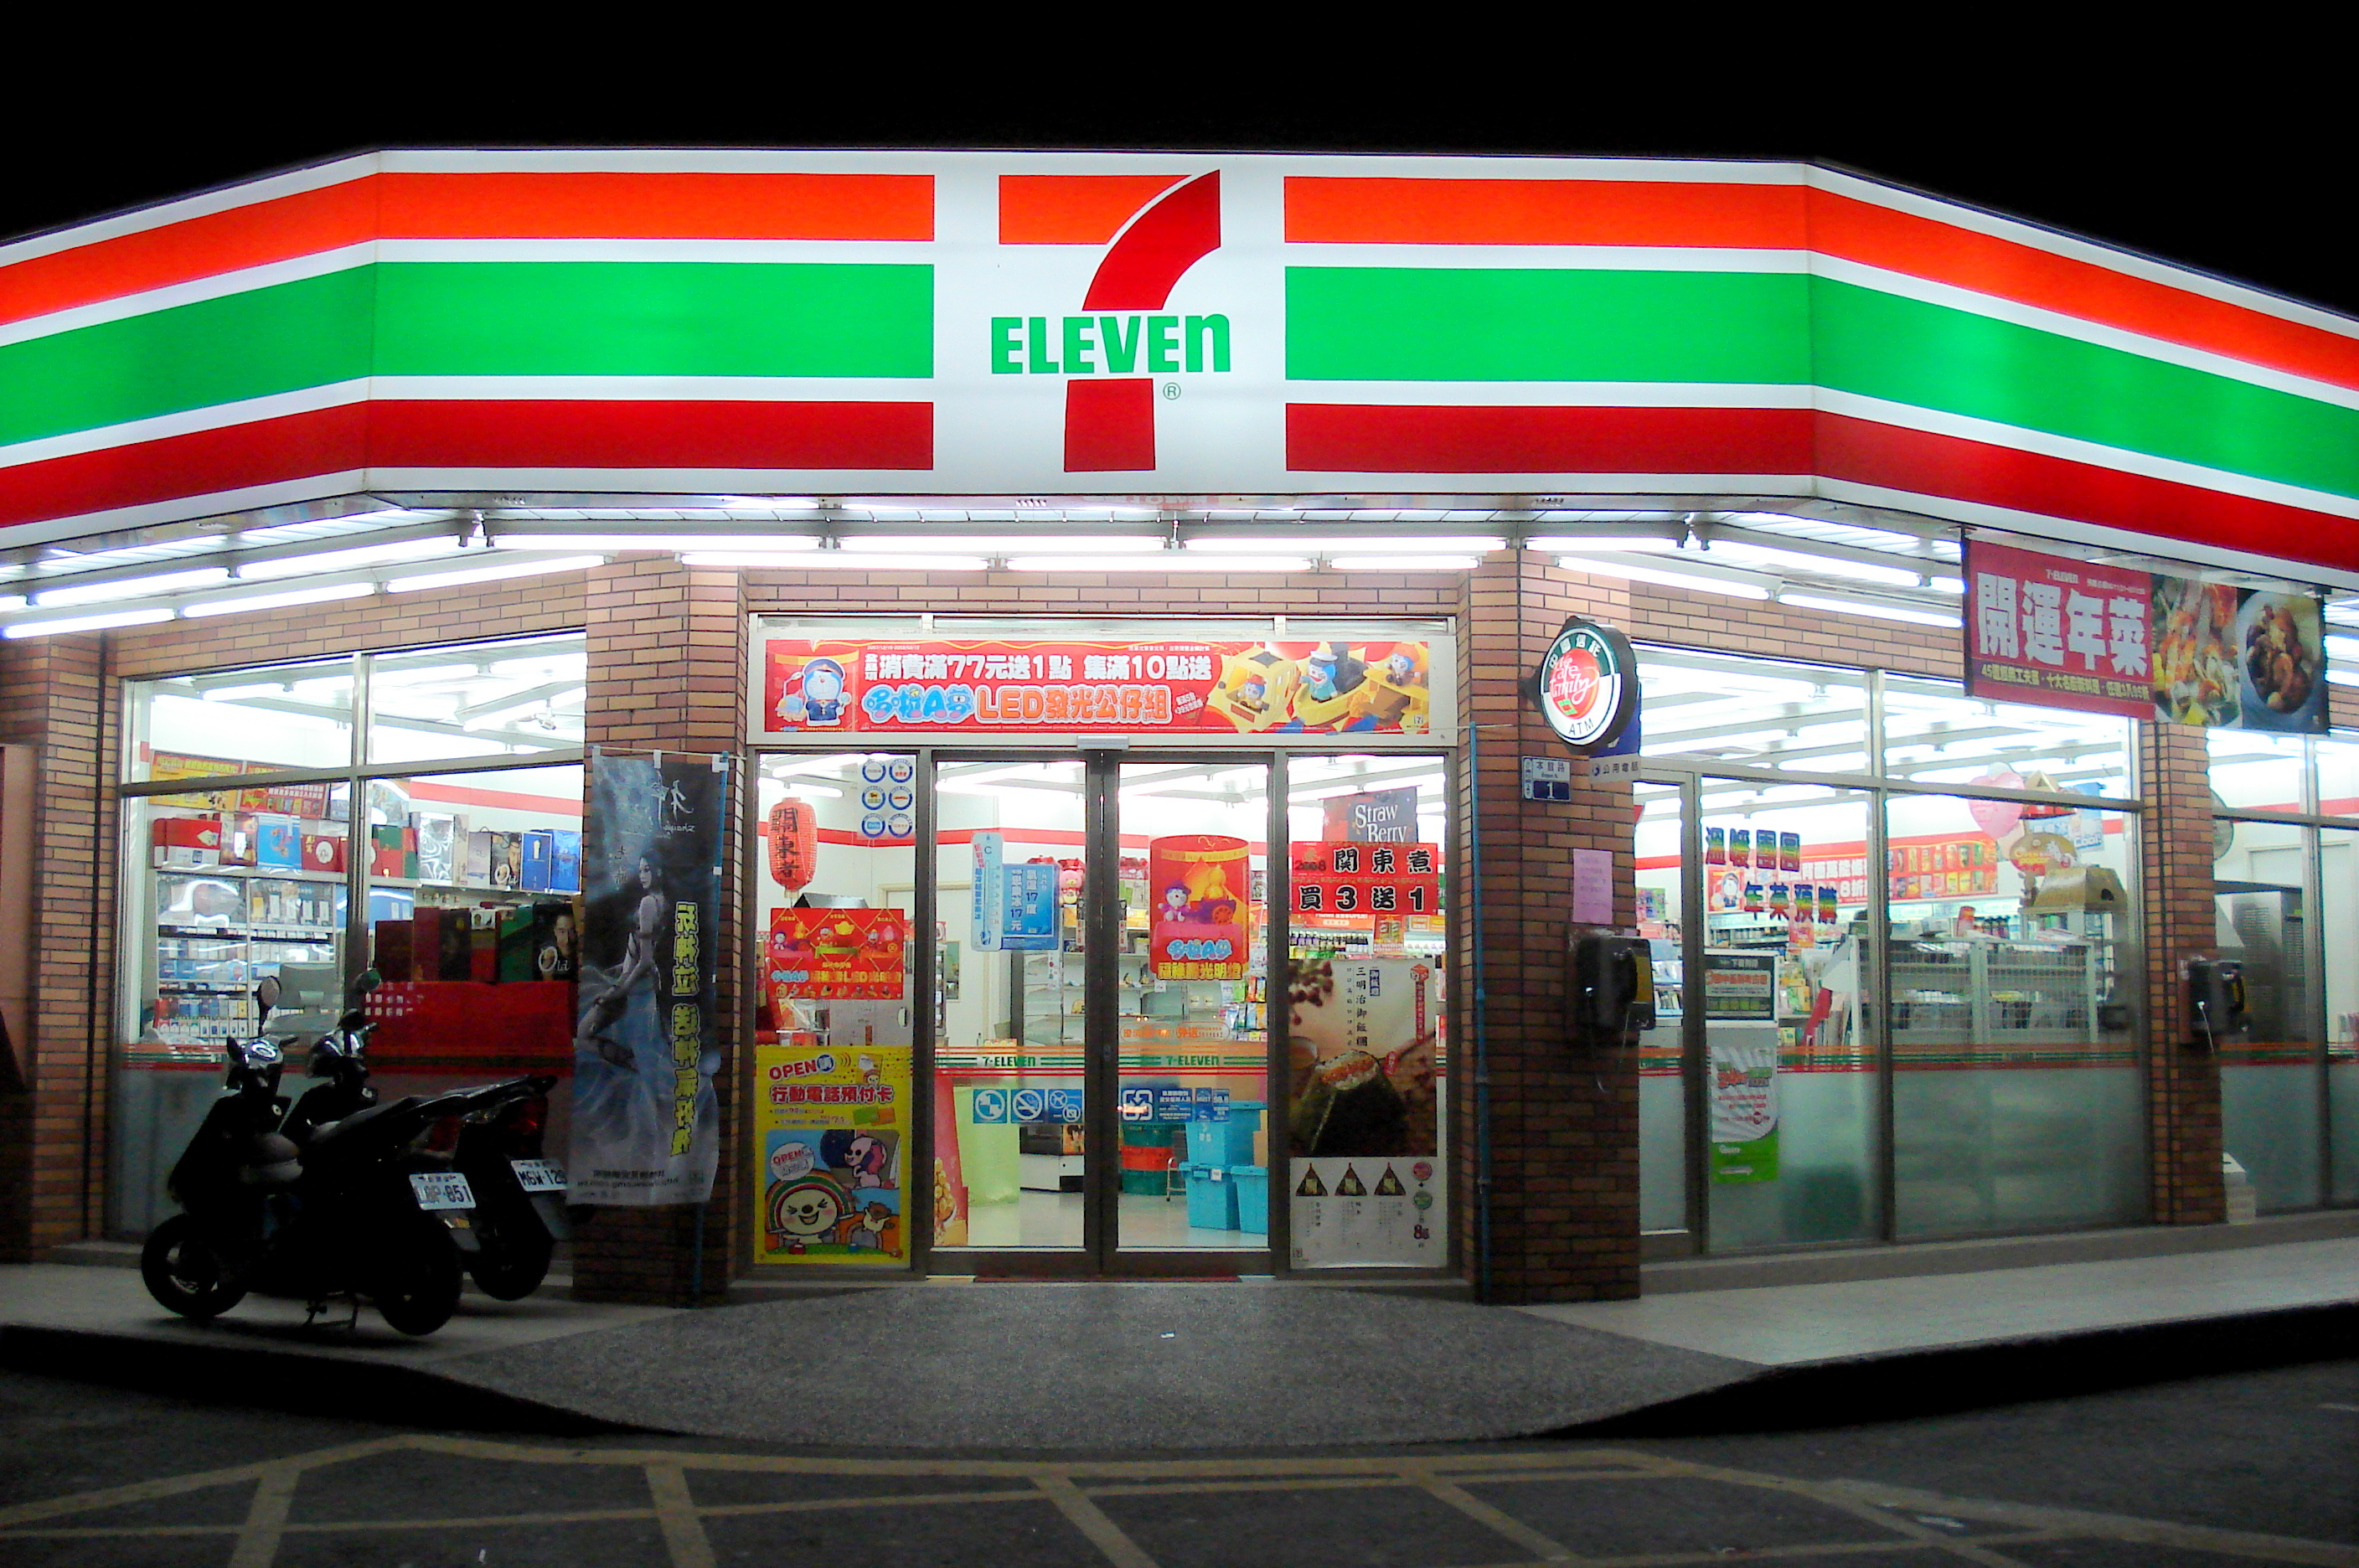 Convenience Store Near Me >> Response to Chelsea Choi's 7-Eleven Post | Nathan Lo's Blog